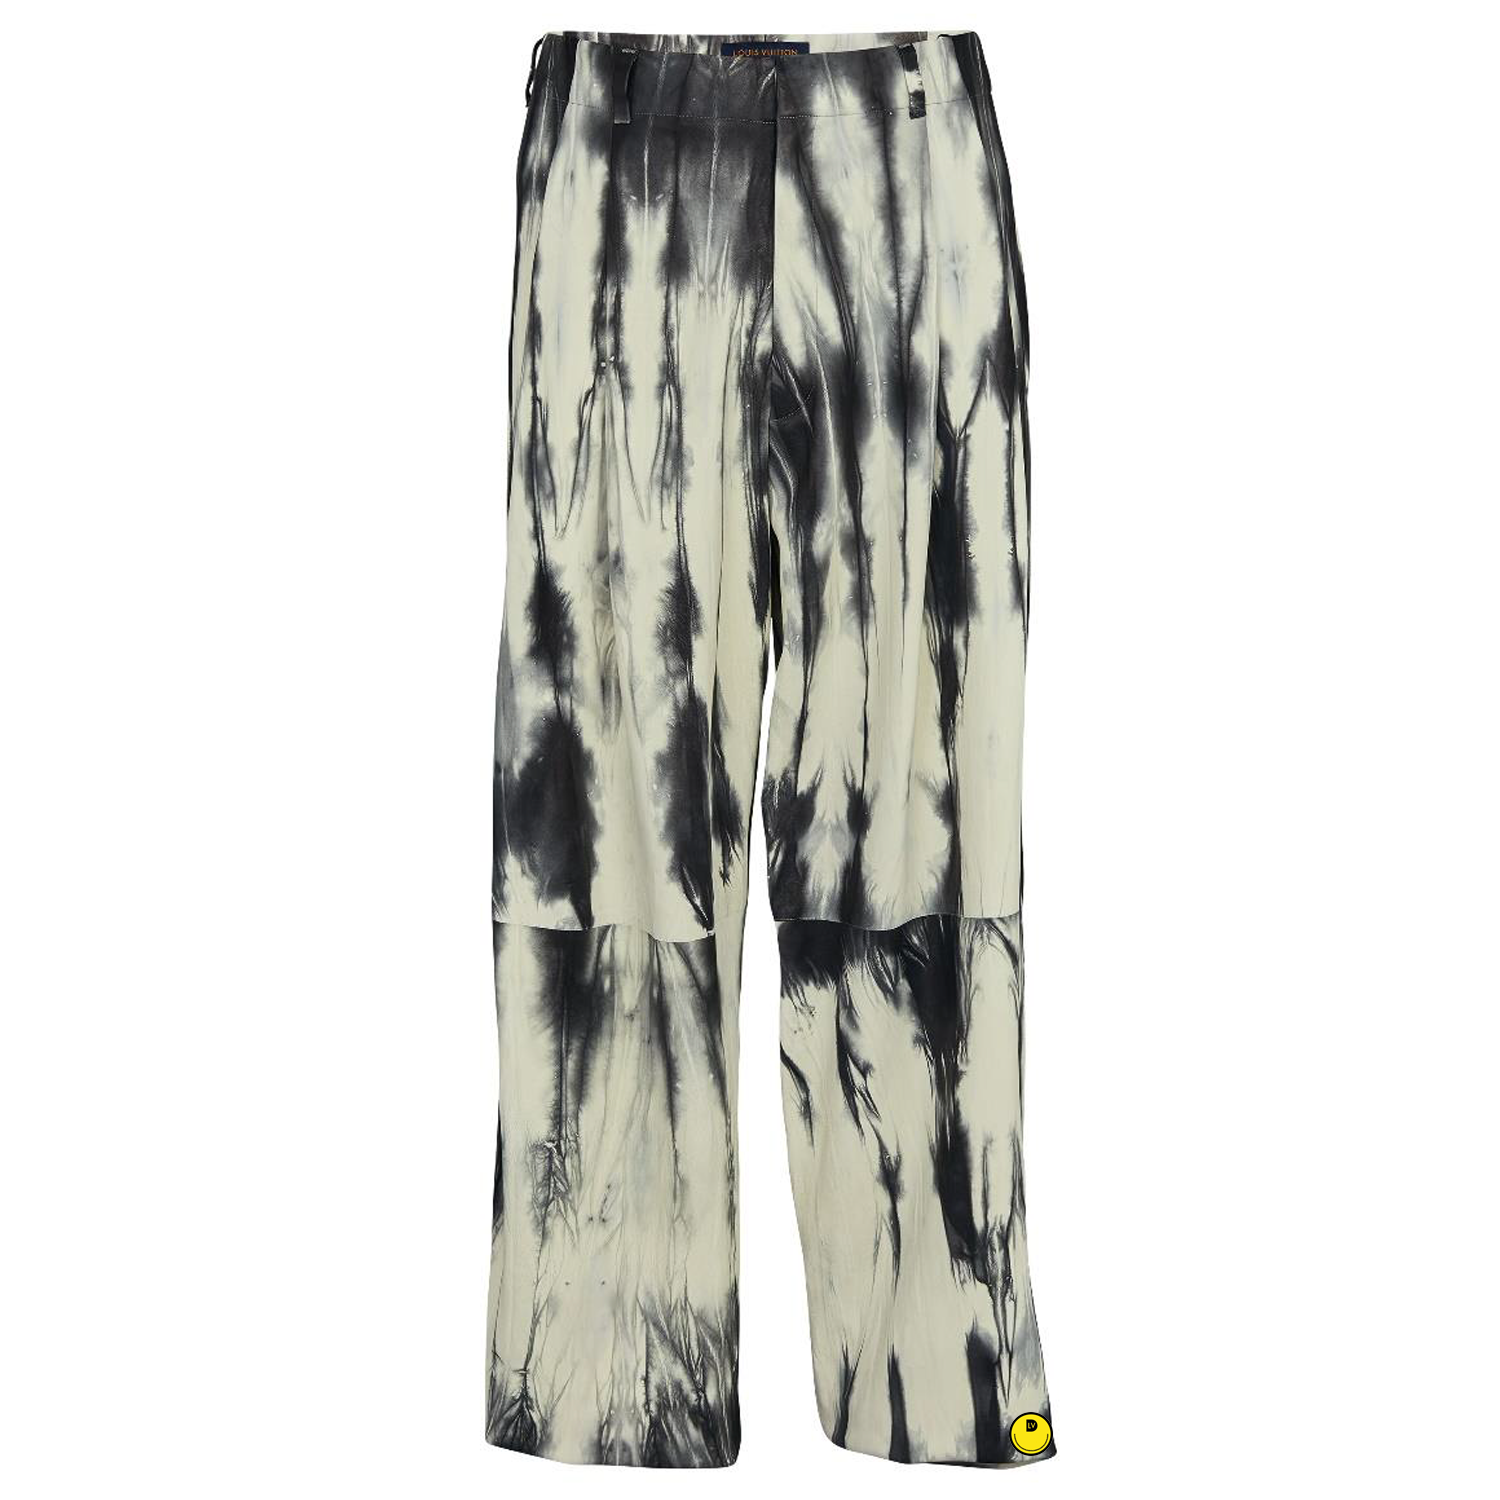 TIE AND DYE LEATHER TROUSERS - €4900 $-NOIR